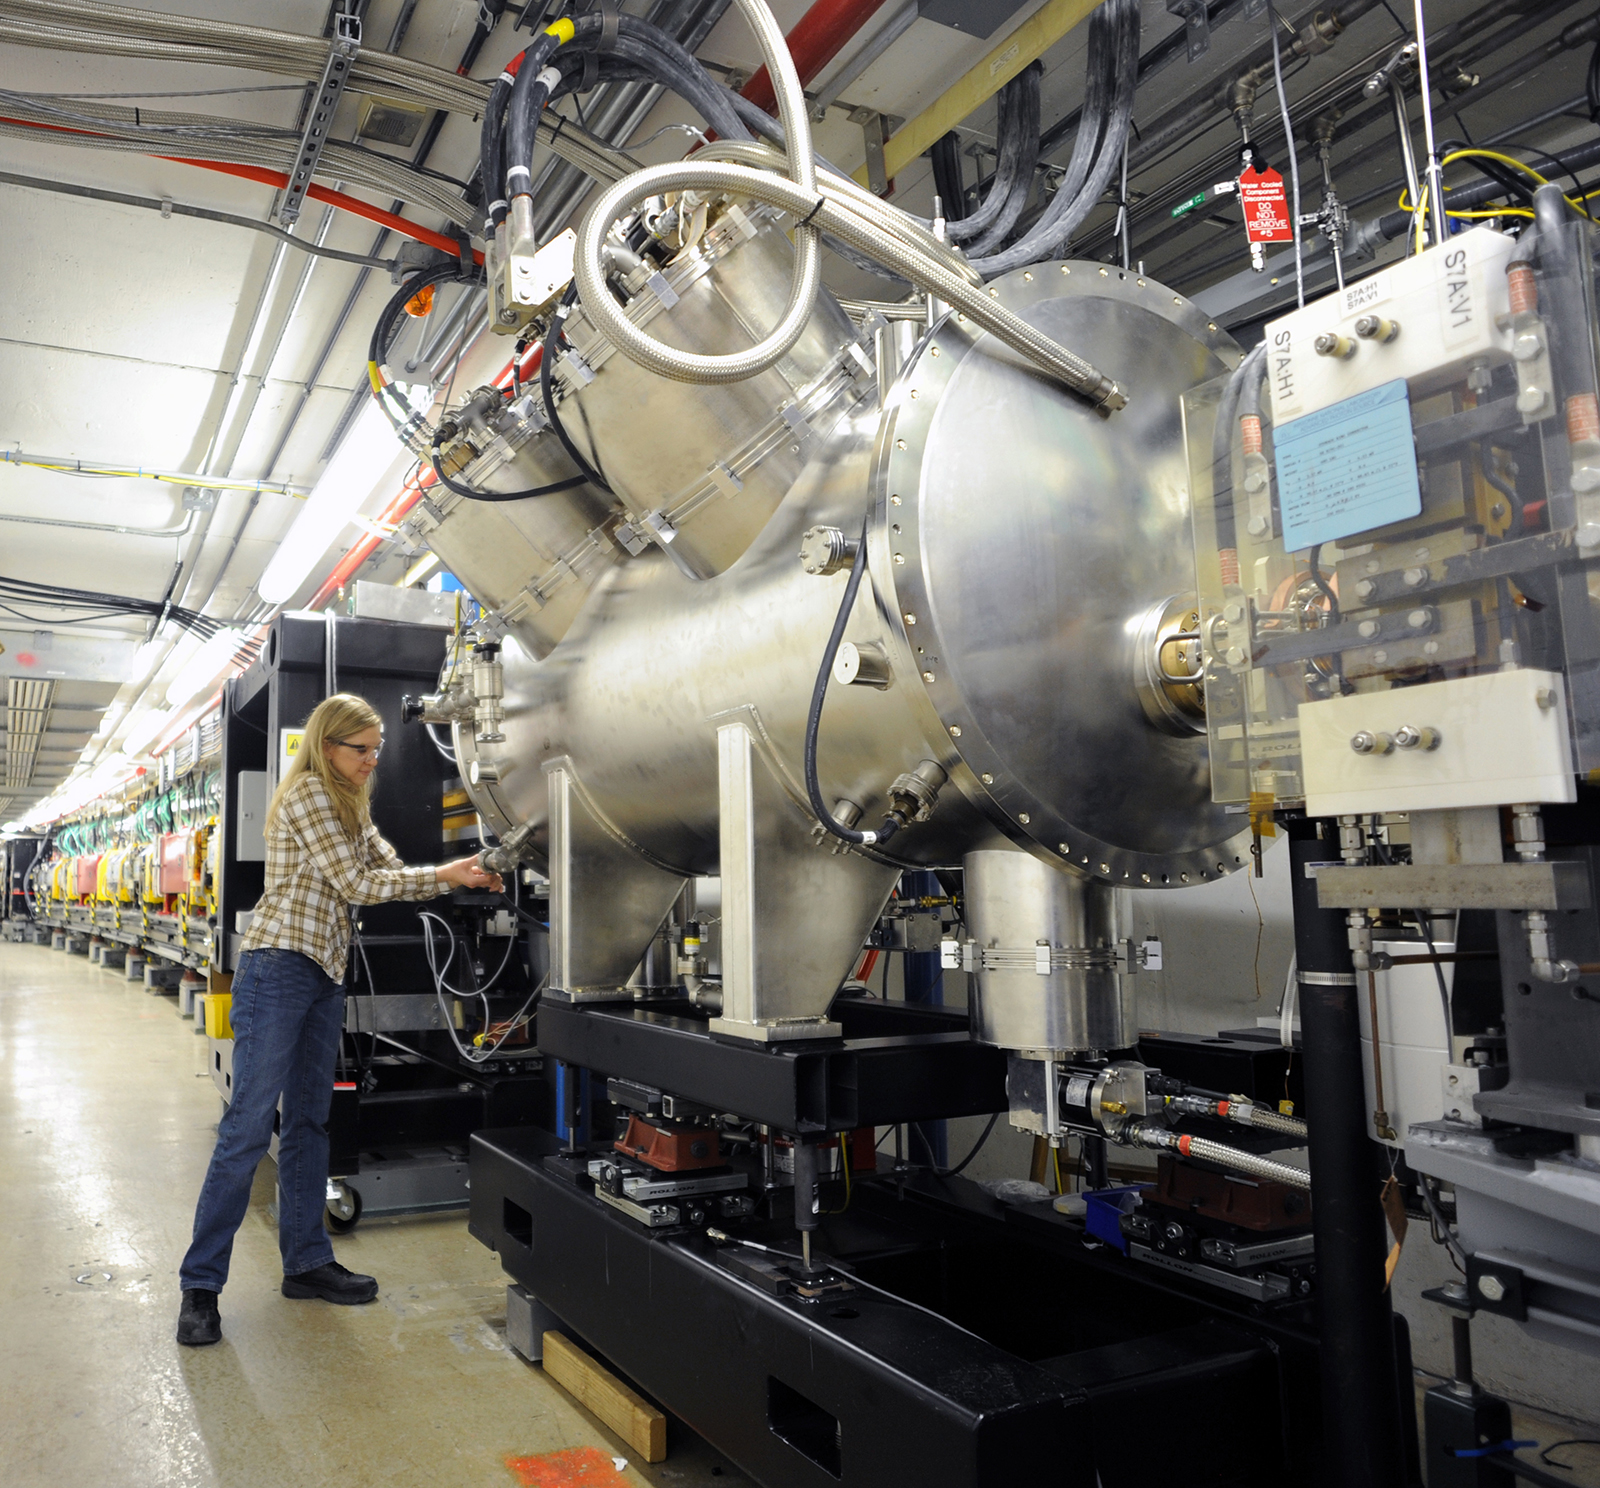 The SCU installed at the straight section of Sector 6 of the Advanced Photon Source at Argonne National Laboratory. To view a larger version of the photo, click on it. Photo courtesy Argonne National Laboratory.